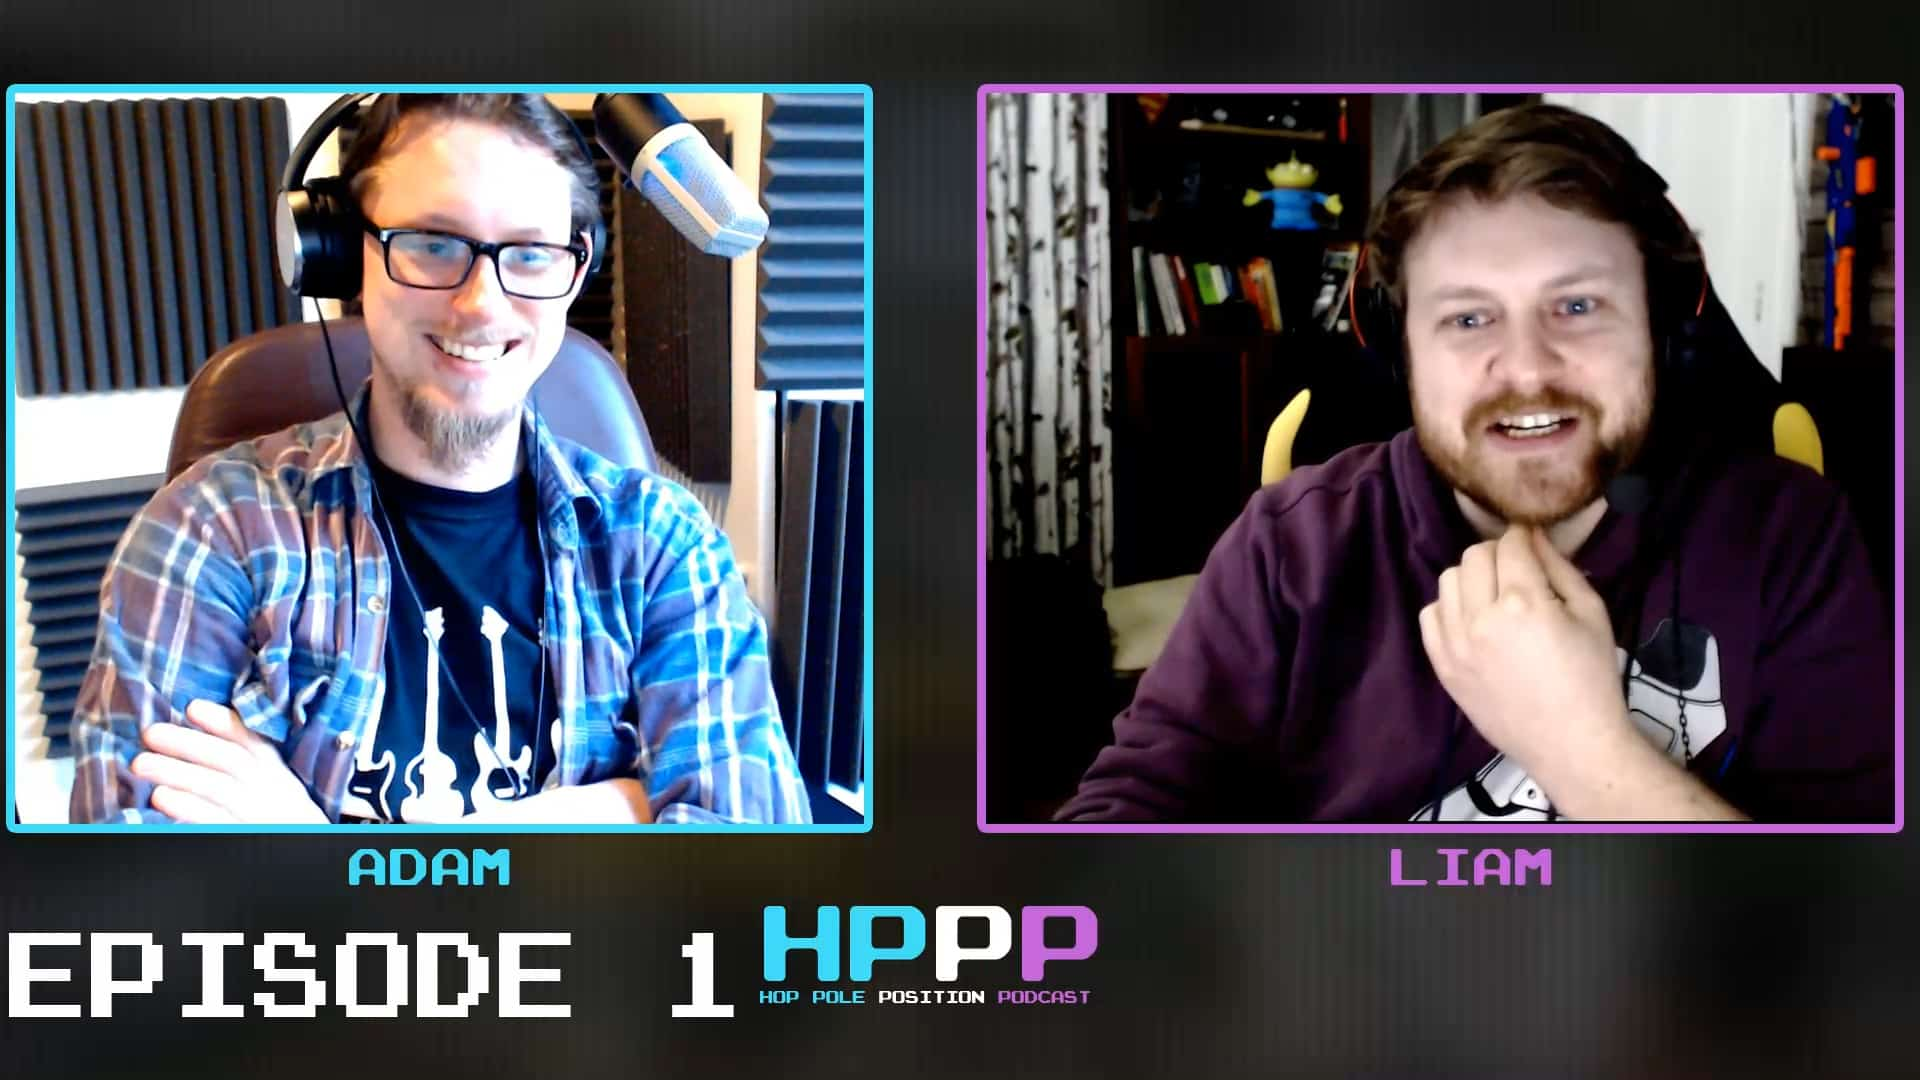 The Hop Pole Position #002 – Live from the Studio! 😁